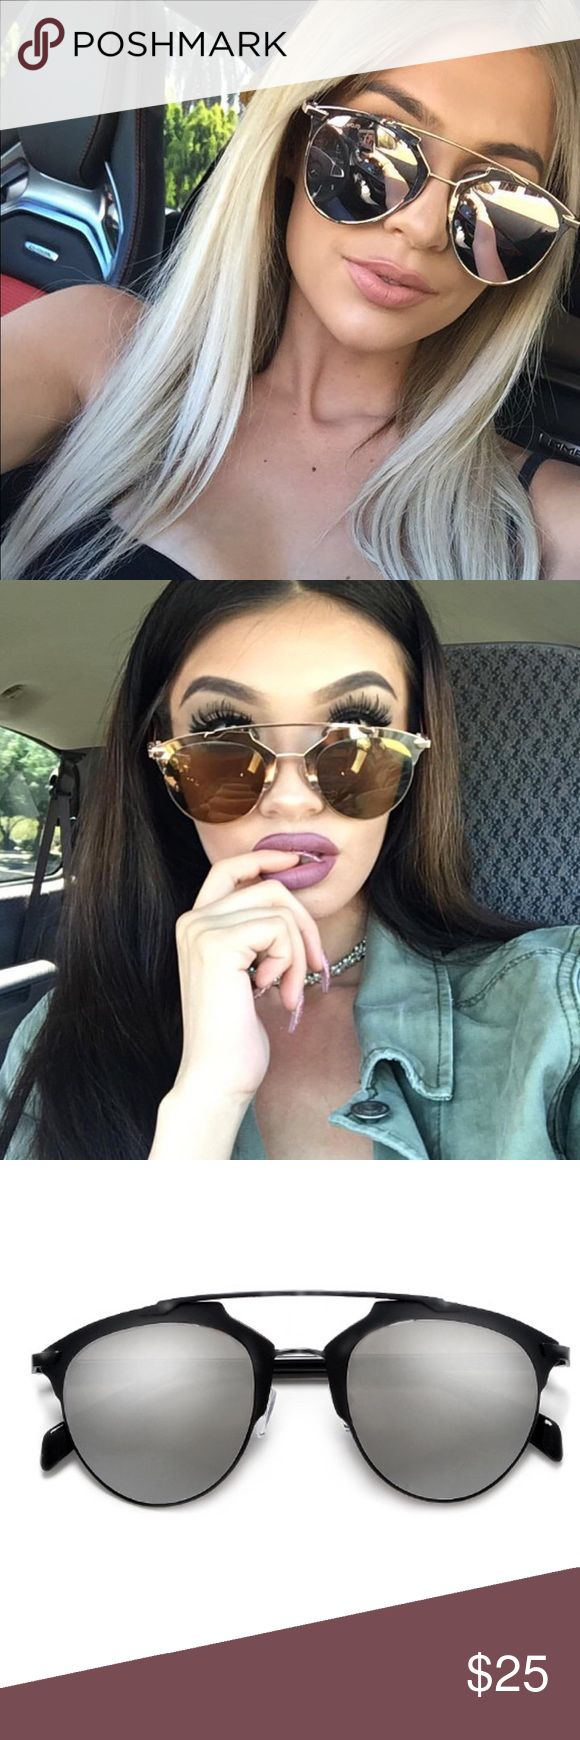 ✨Aria Sunnies - Various Colors✨ 💵Price is firm unless bundled    2+ 20% Off 💌Item Ship in 2-3 Days 📍No Trades UVA & UVB Protection  ✨ Sporty Super Chic Design ✨ Nickel Finish Frame / Light Weight Plastic Temples ✨ Polycarbonate UV400 Lens ✨ Adjustable Silicone Nose Pads  ✨ Microfiber Bag Included Measurements : 52mm(W) 47mm(H) 18mm(BR) 144mm Total Frame Accessories Sunglasses